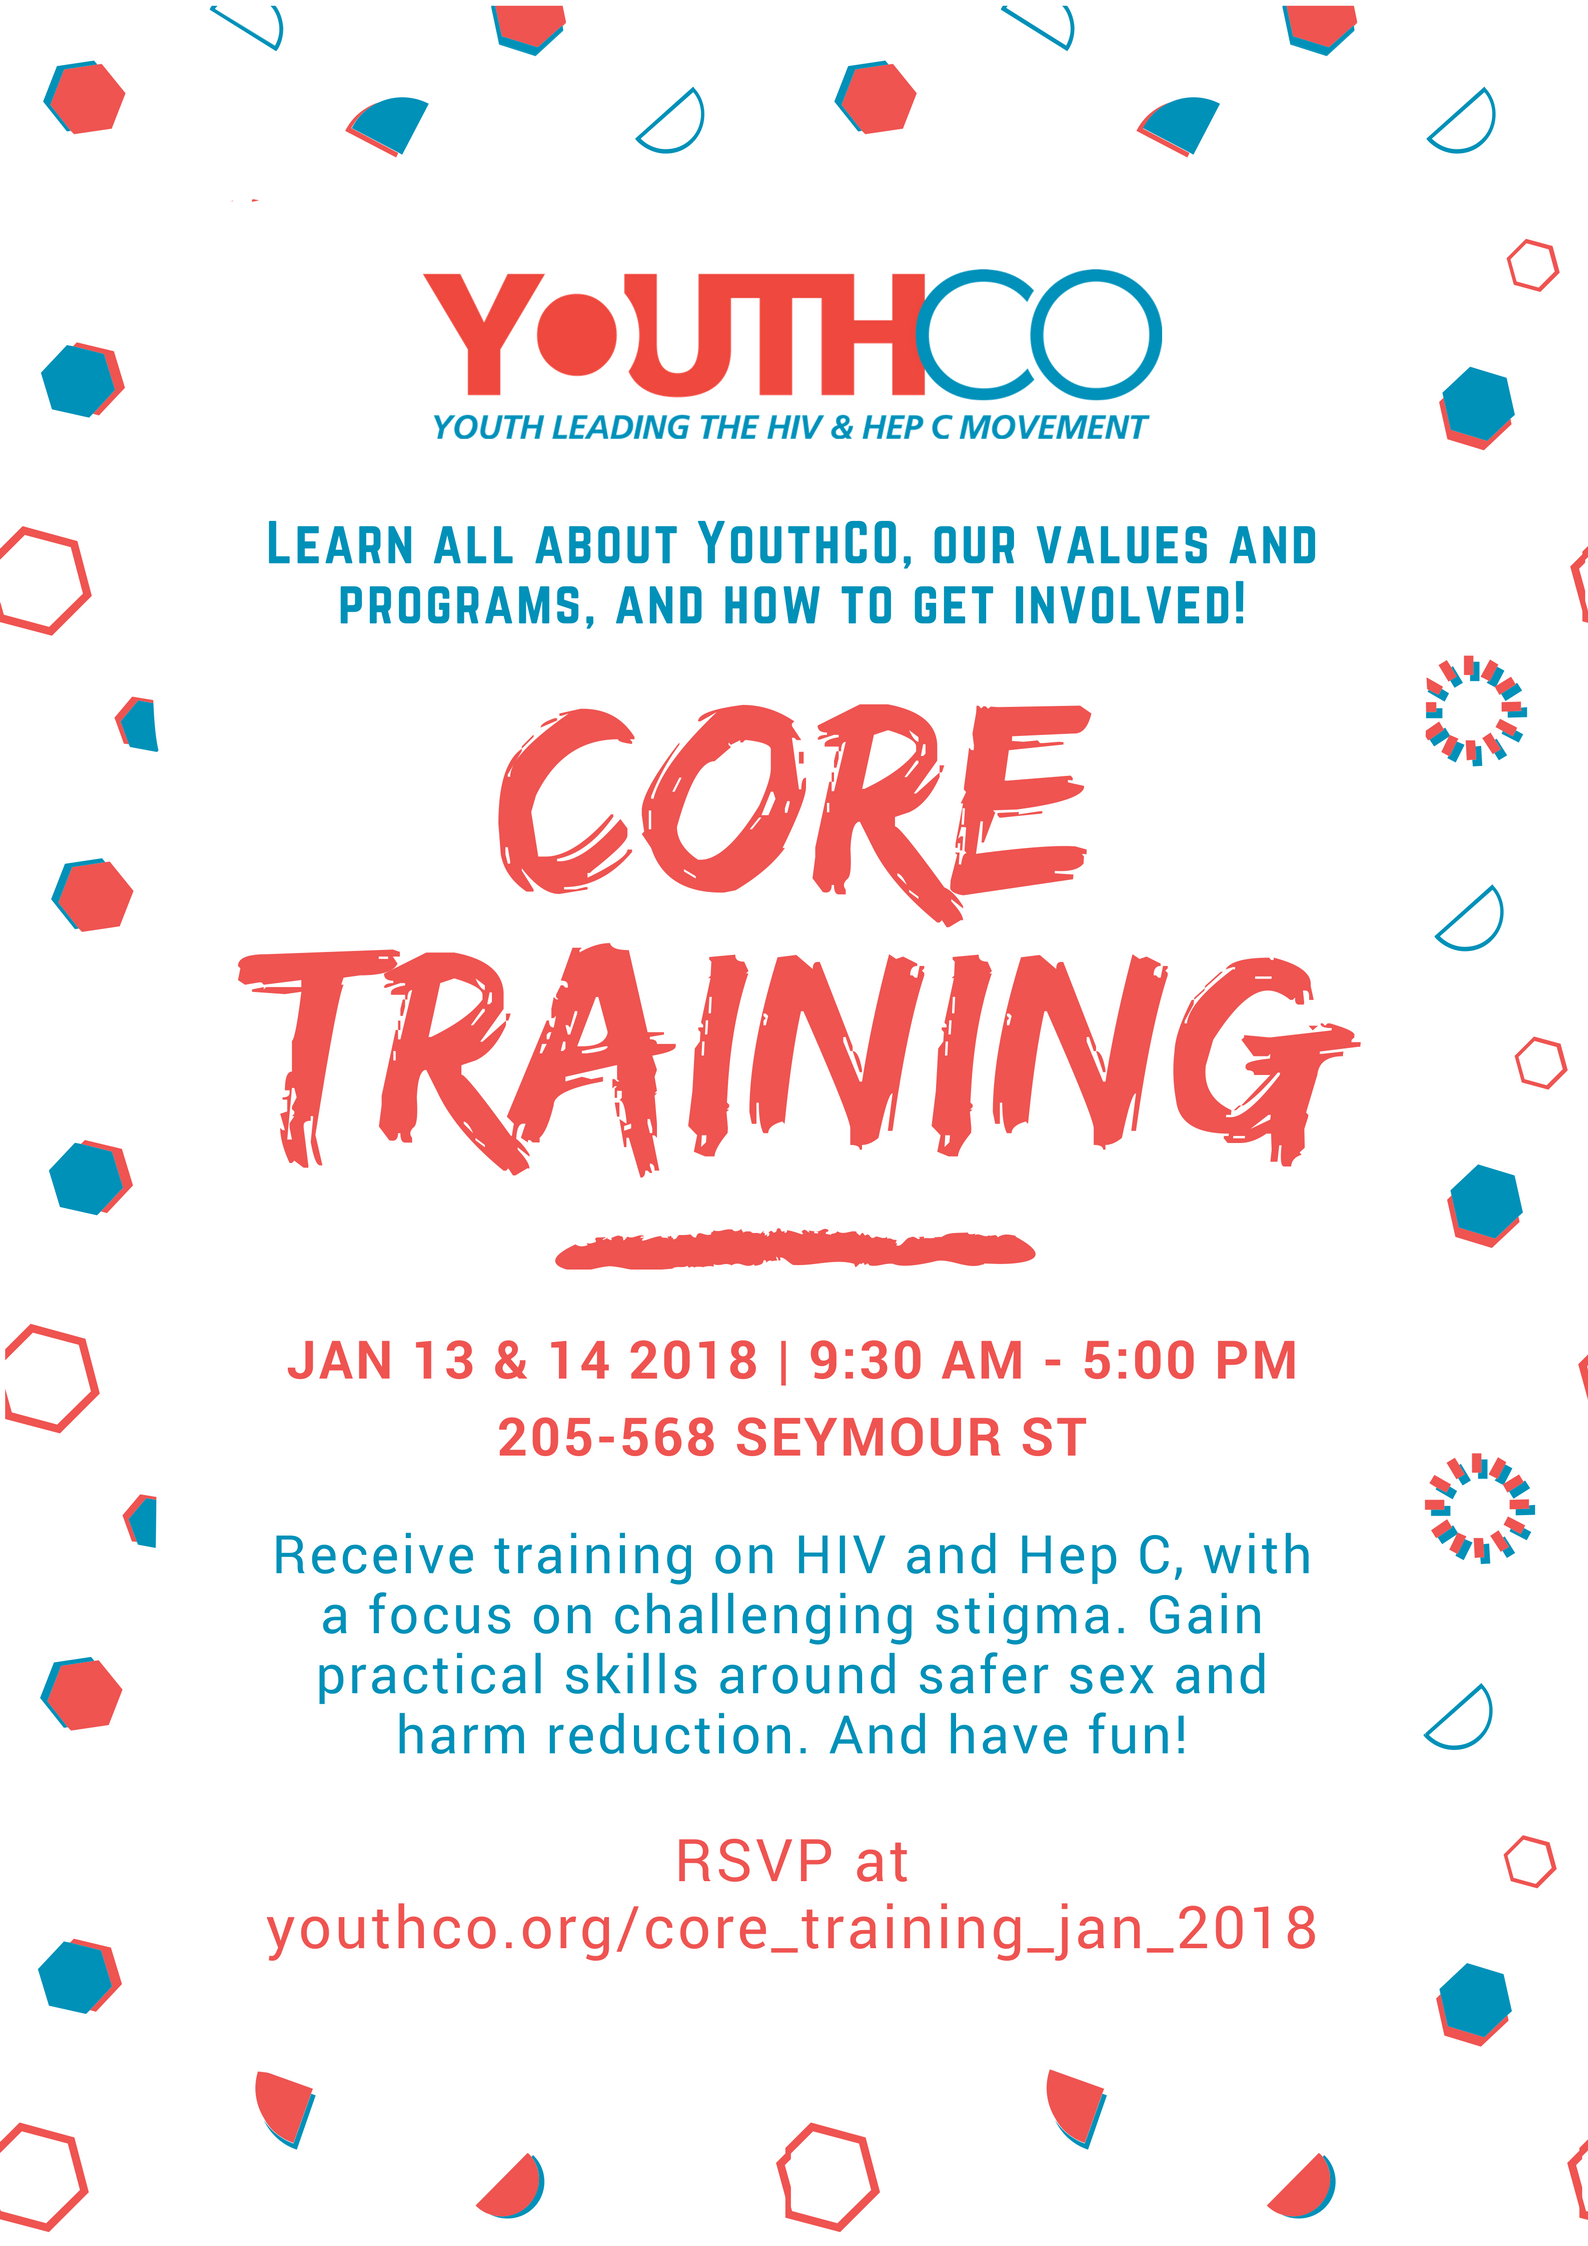 Poster_YouthCO_Core_Training_201801.png